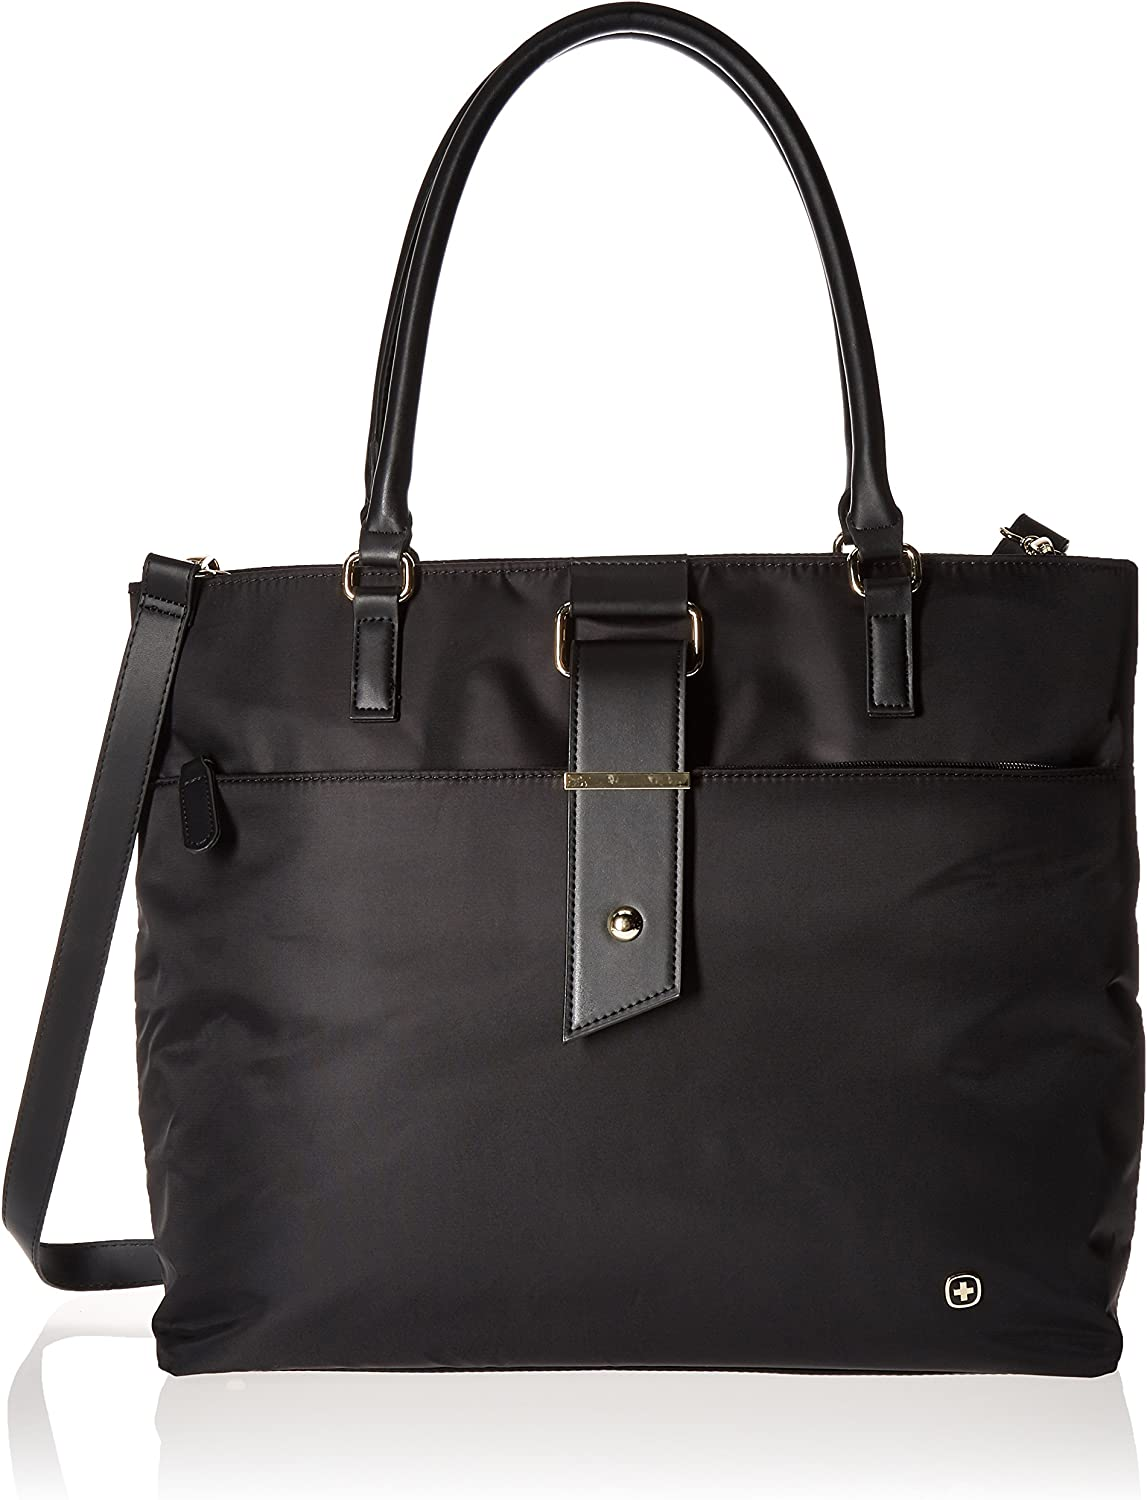 "Wenger Luggage Ana 16"" Women's Laptop Tote, Black, One Size"